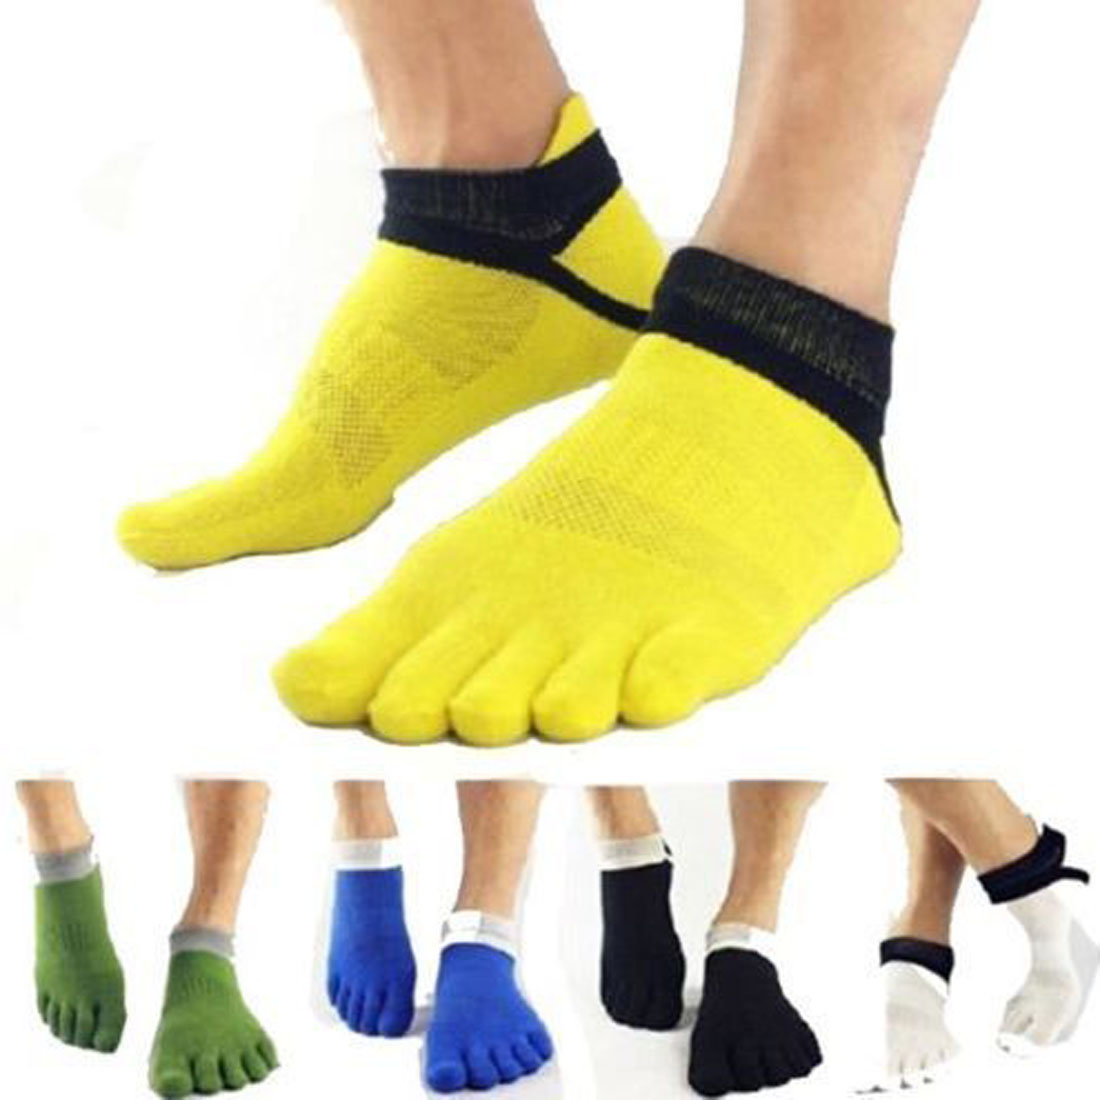 Hot Sale 1 Pairs Silicone Boat Five Finger Socks Women Nonslip Compression Sock Men Low Cut No Show Christmas Socks Breathable